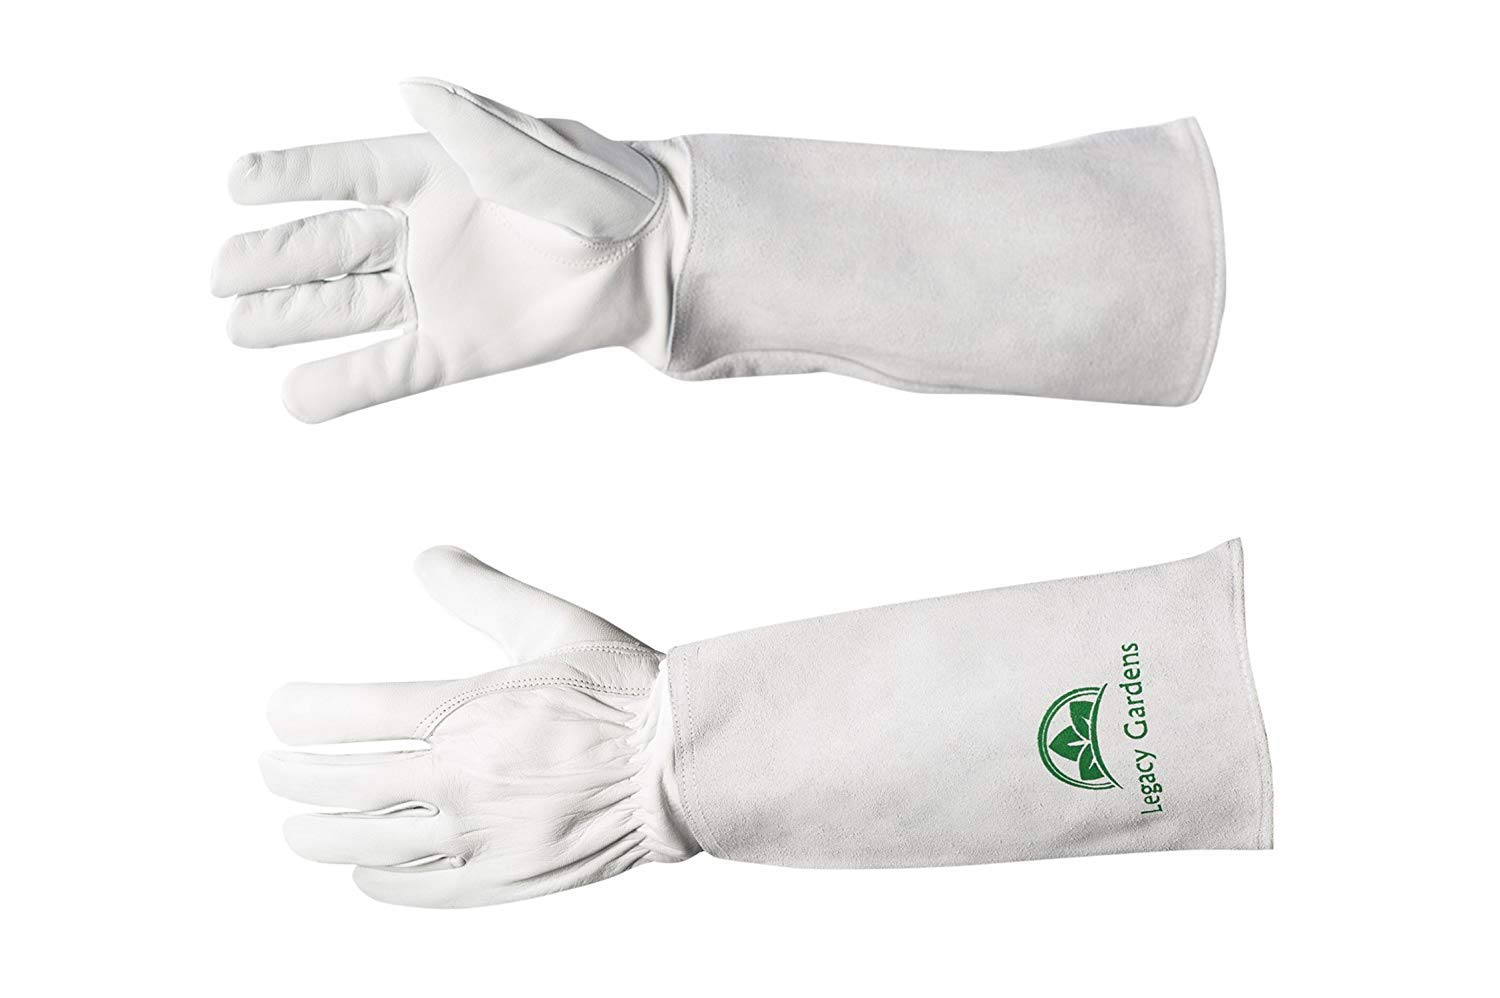 Legacy Gardens Protective Gloves for Women and Men Work Gloves Also Suitable For Thorny Bushes Cacti Rose Pruning Landscaping Work (Extra Large)